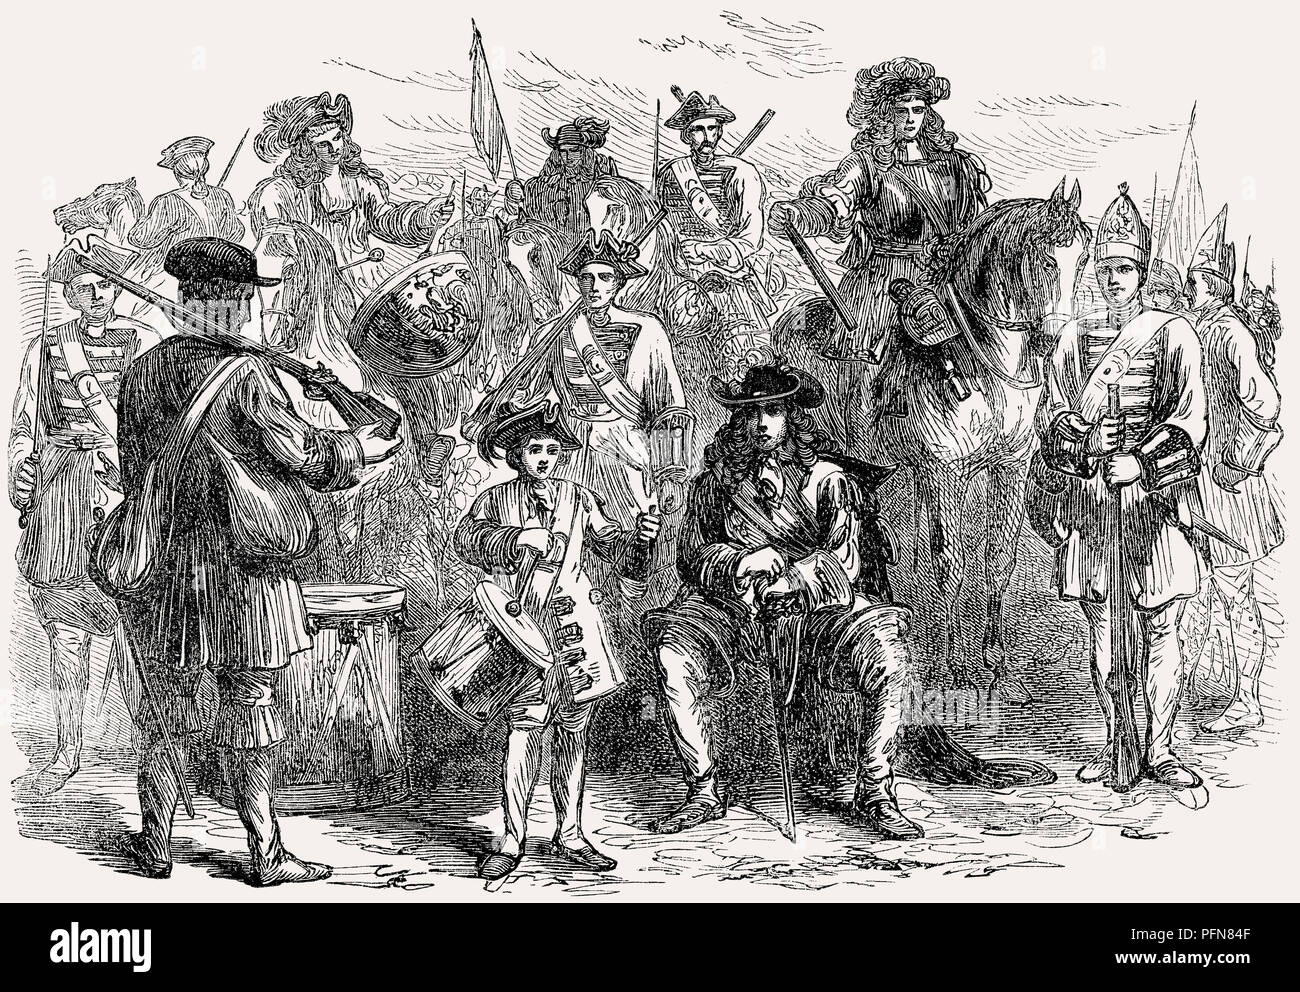 Military uniforms of the 17th century, From British Battles on Land and Sea, by James Grant - Stock Image